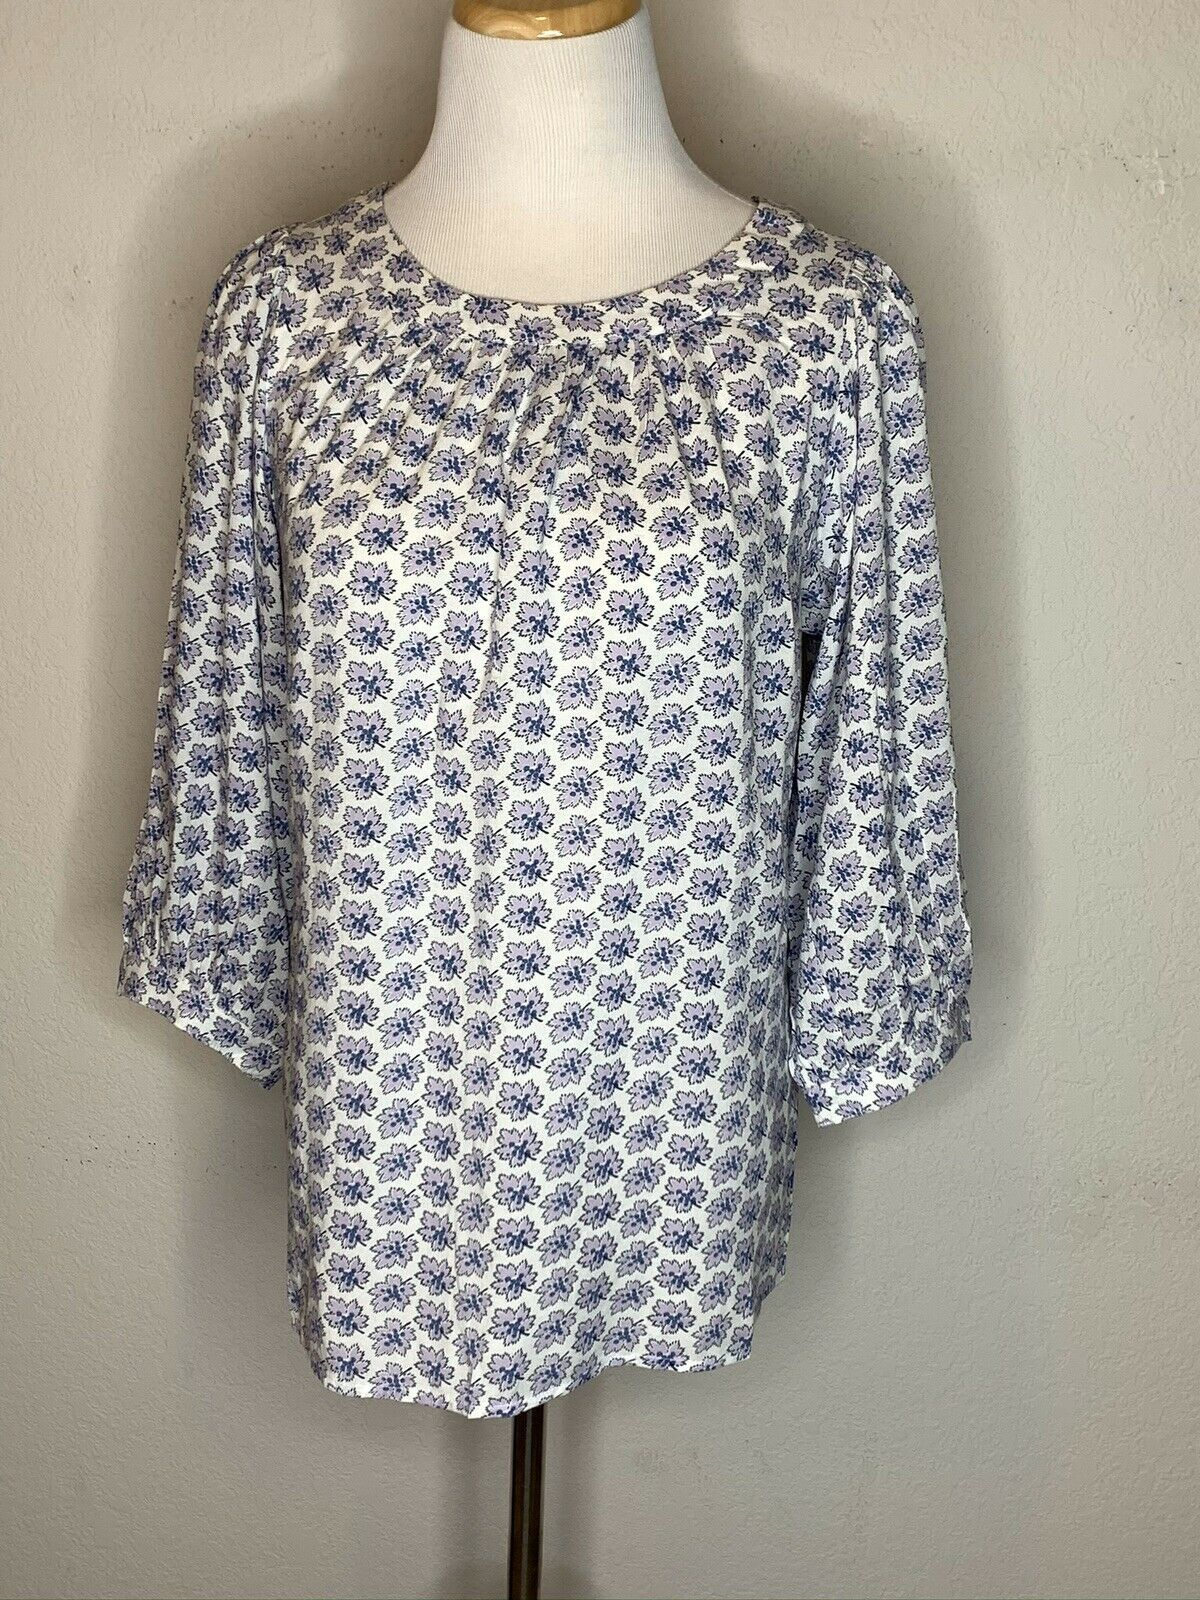 Primary image for GAP Womens Floral Peasant Boho Tunic Top Blouse Lightweight White Purple Sz XS